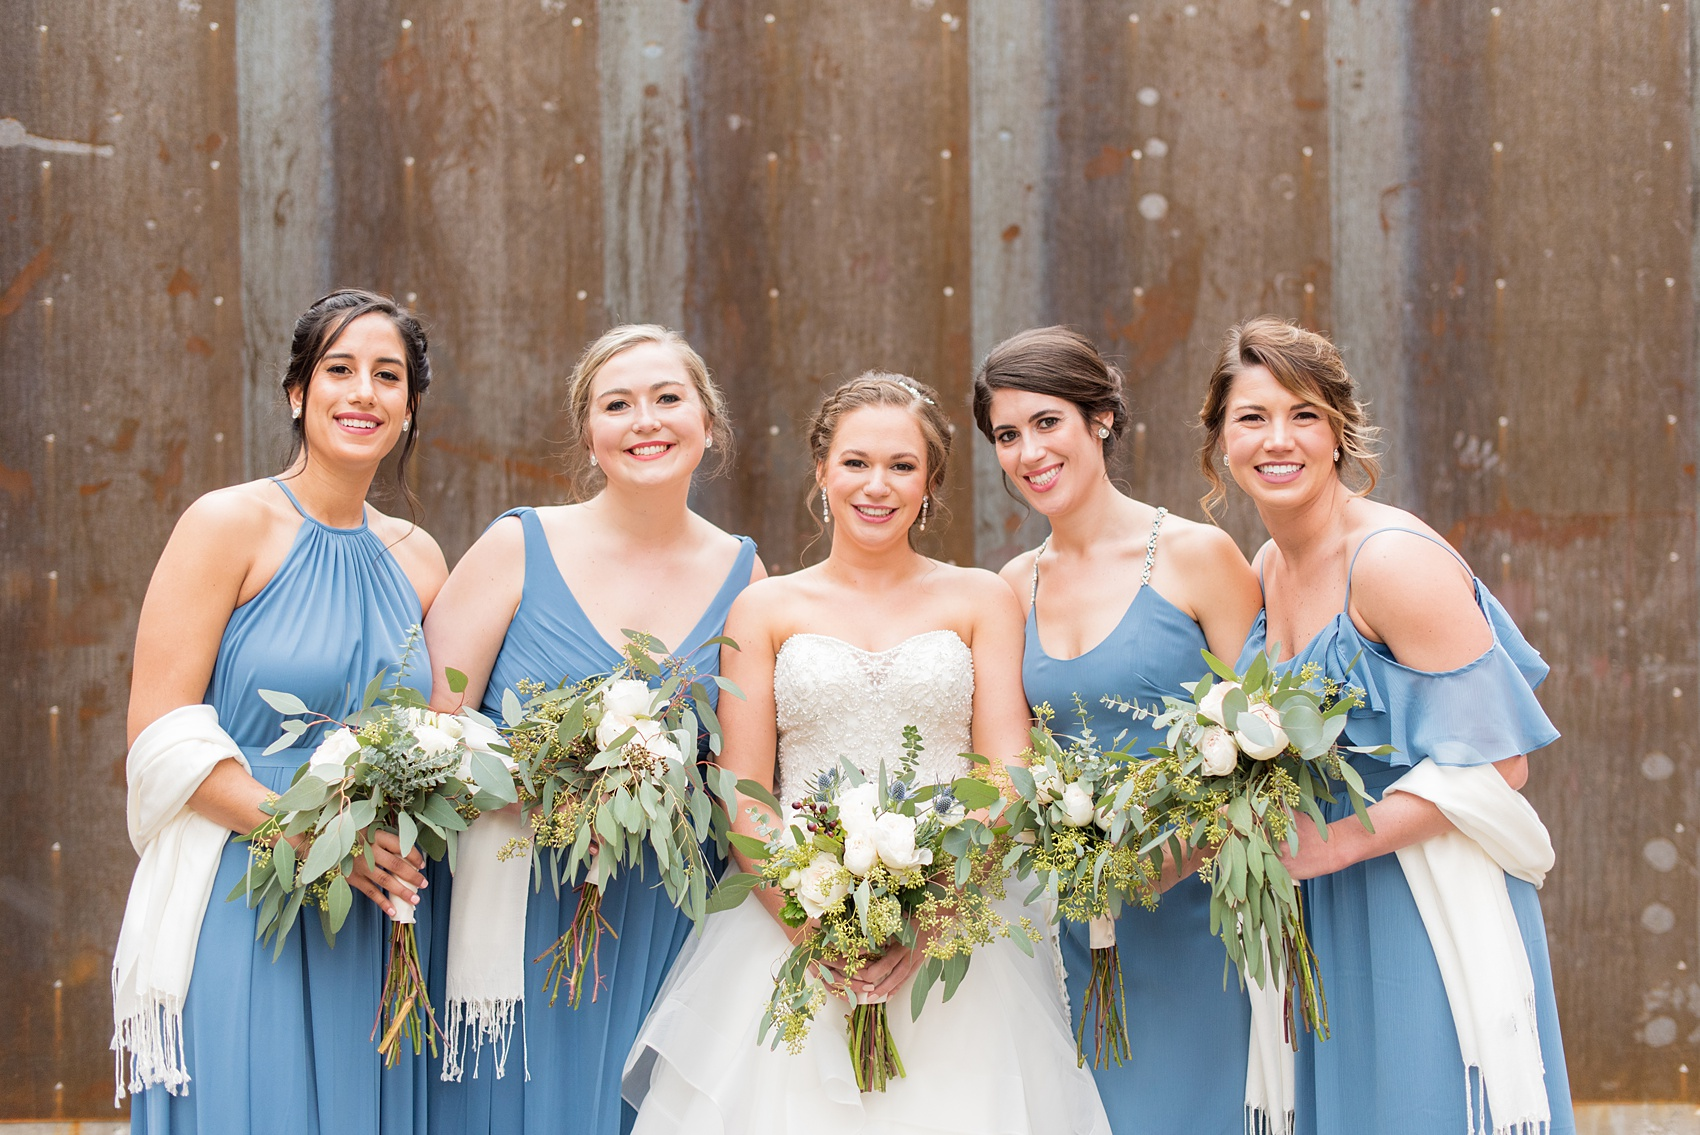 Bridesmaids Durham wedding photos at The Cookery by Mikkel Paige Photography in North Carolina. The bridal party wore different blue dresses, had white shawls for the winter wedding, and stood by the bride for this urban picture.